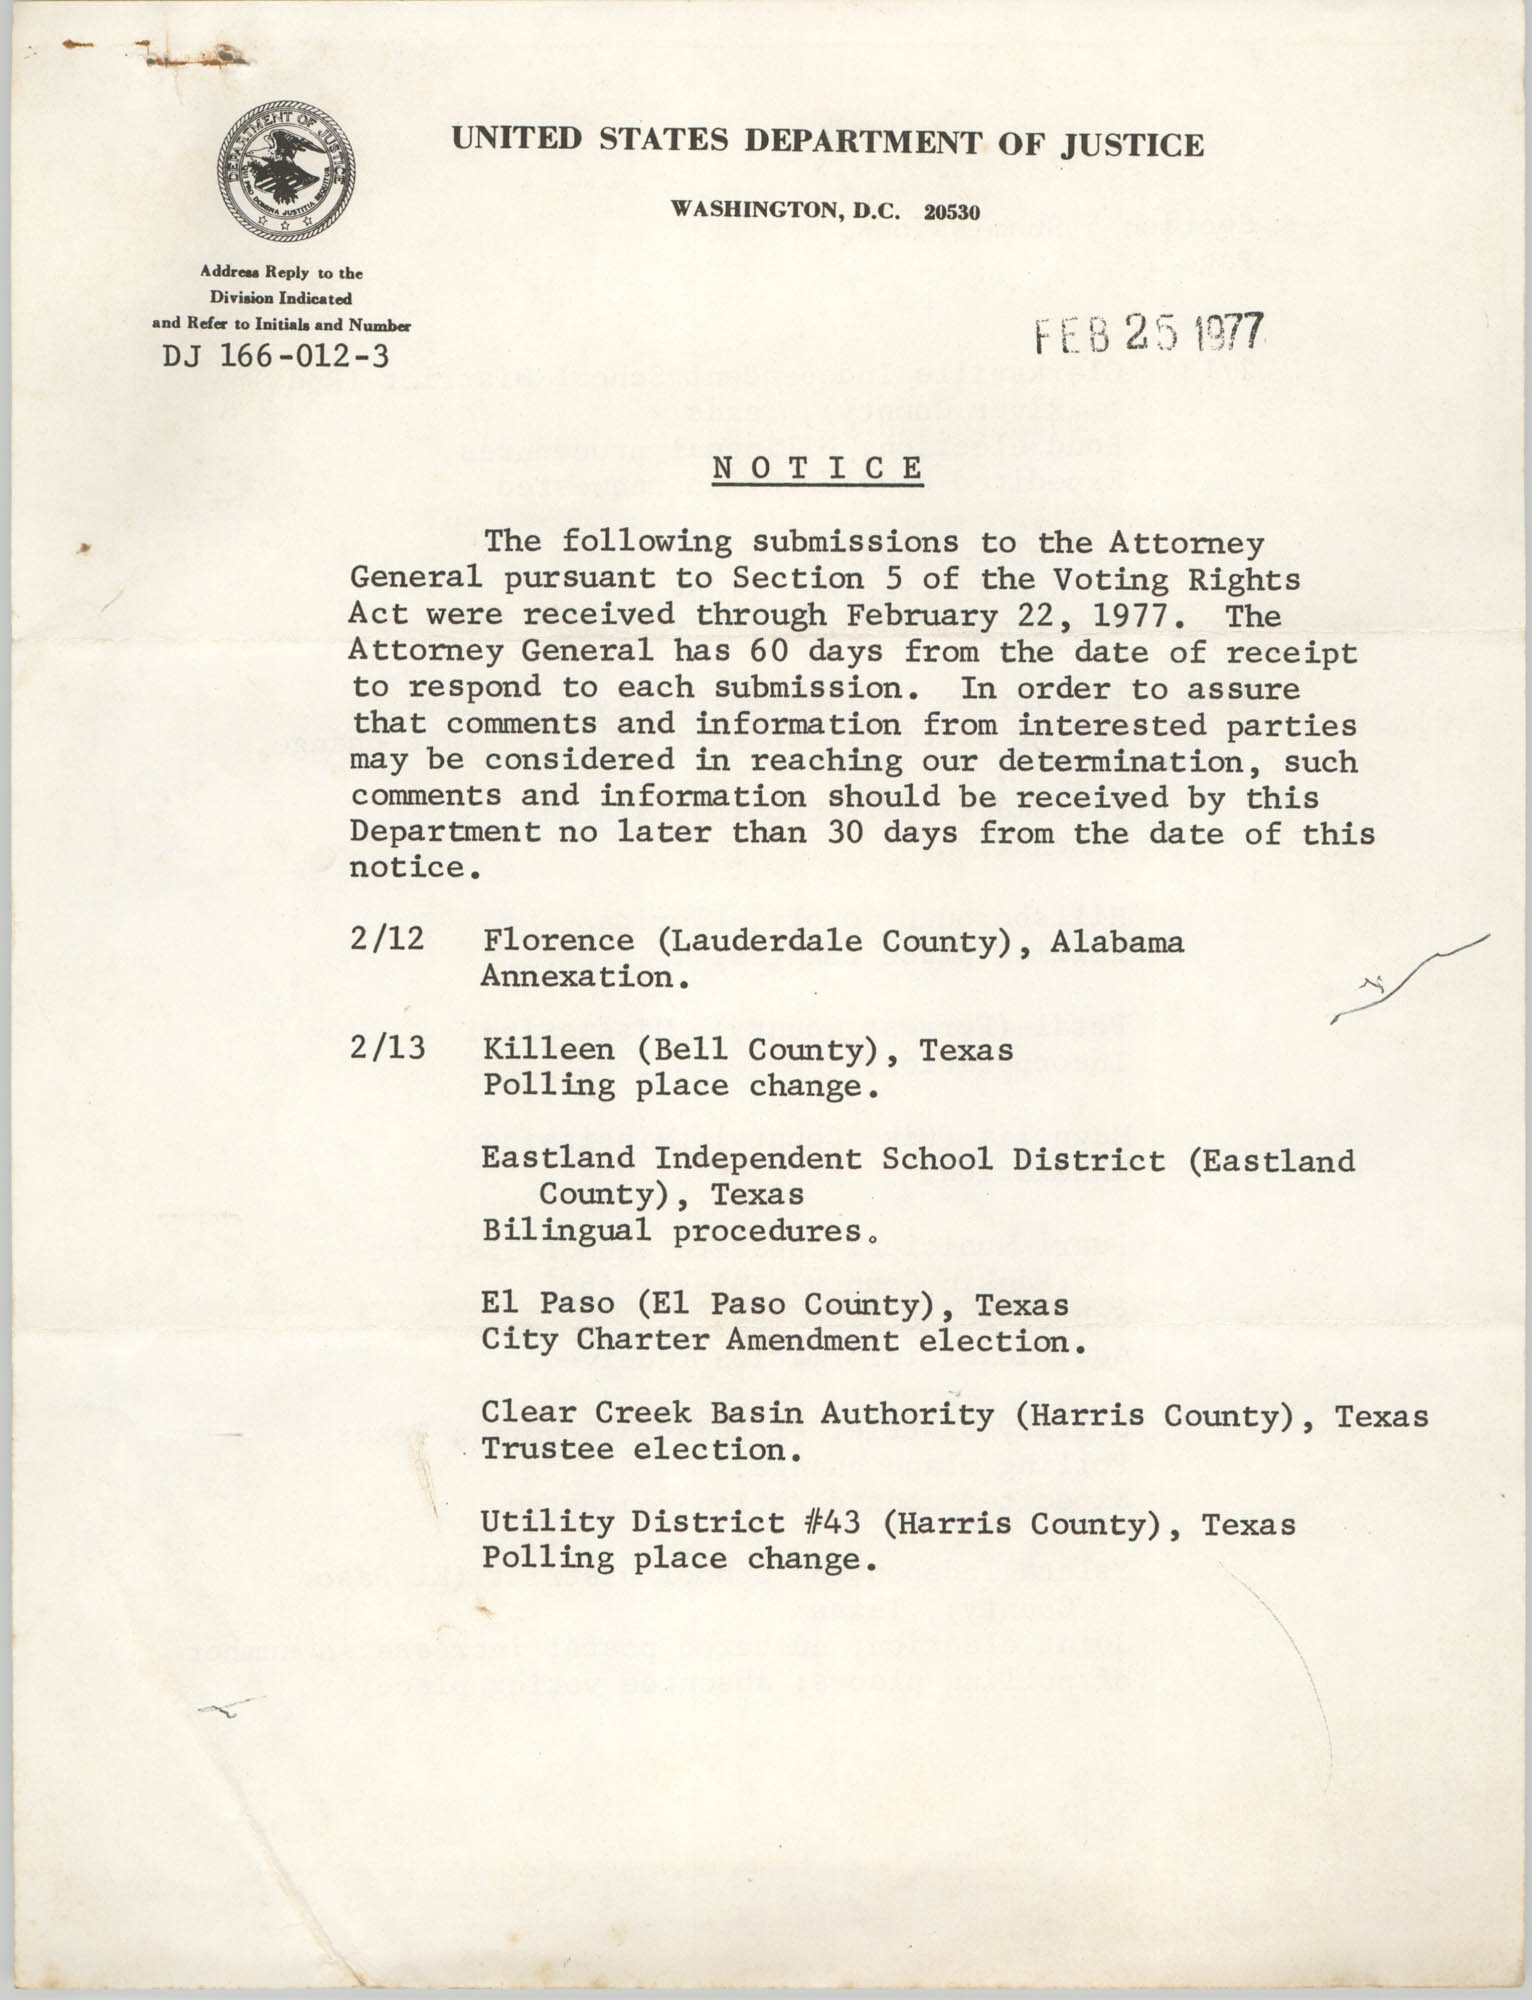 United States Department of Justice Notice, February 25, 1977, Page 1